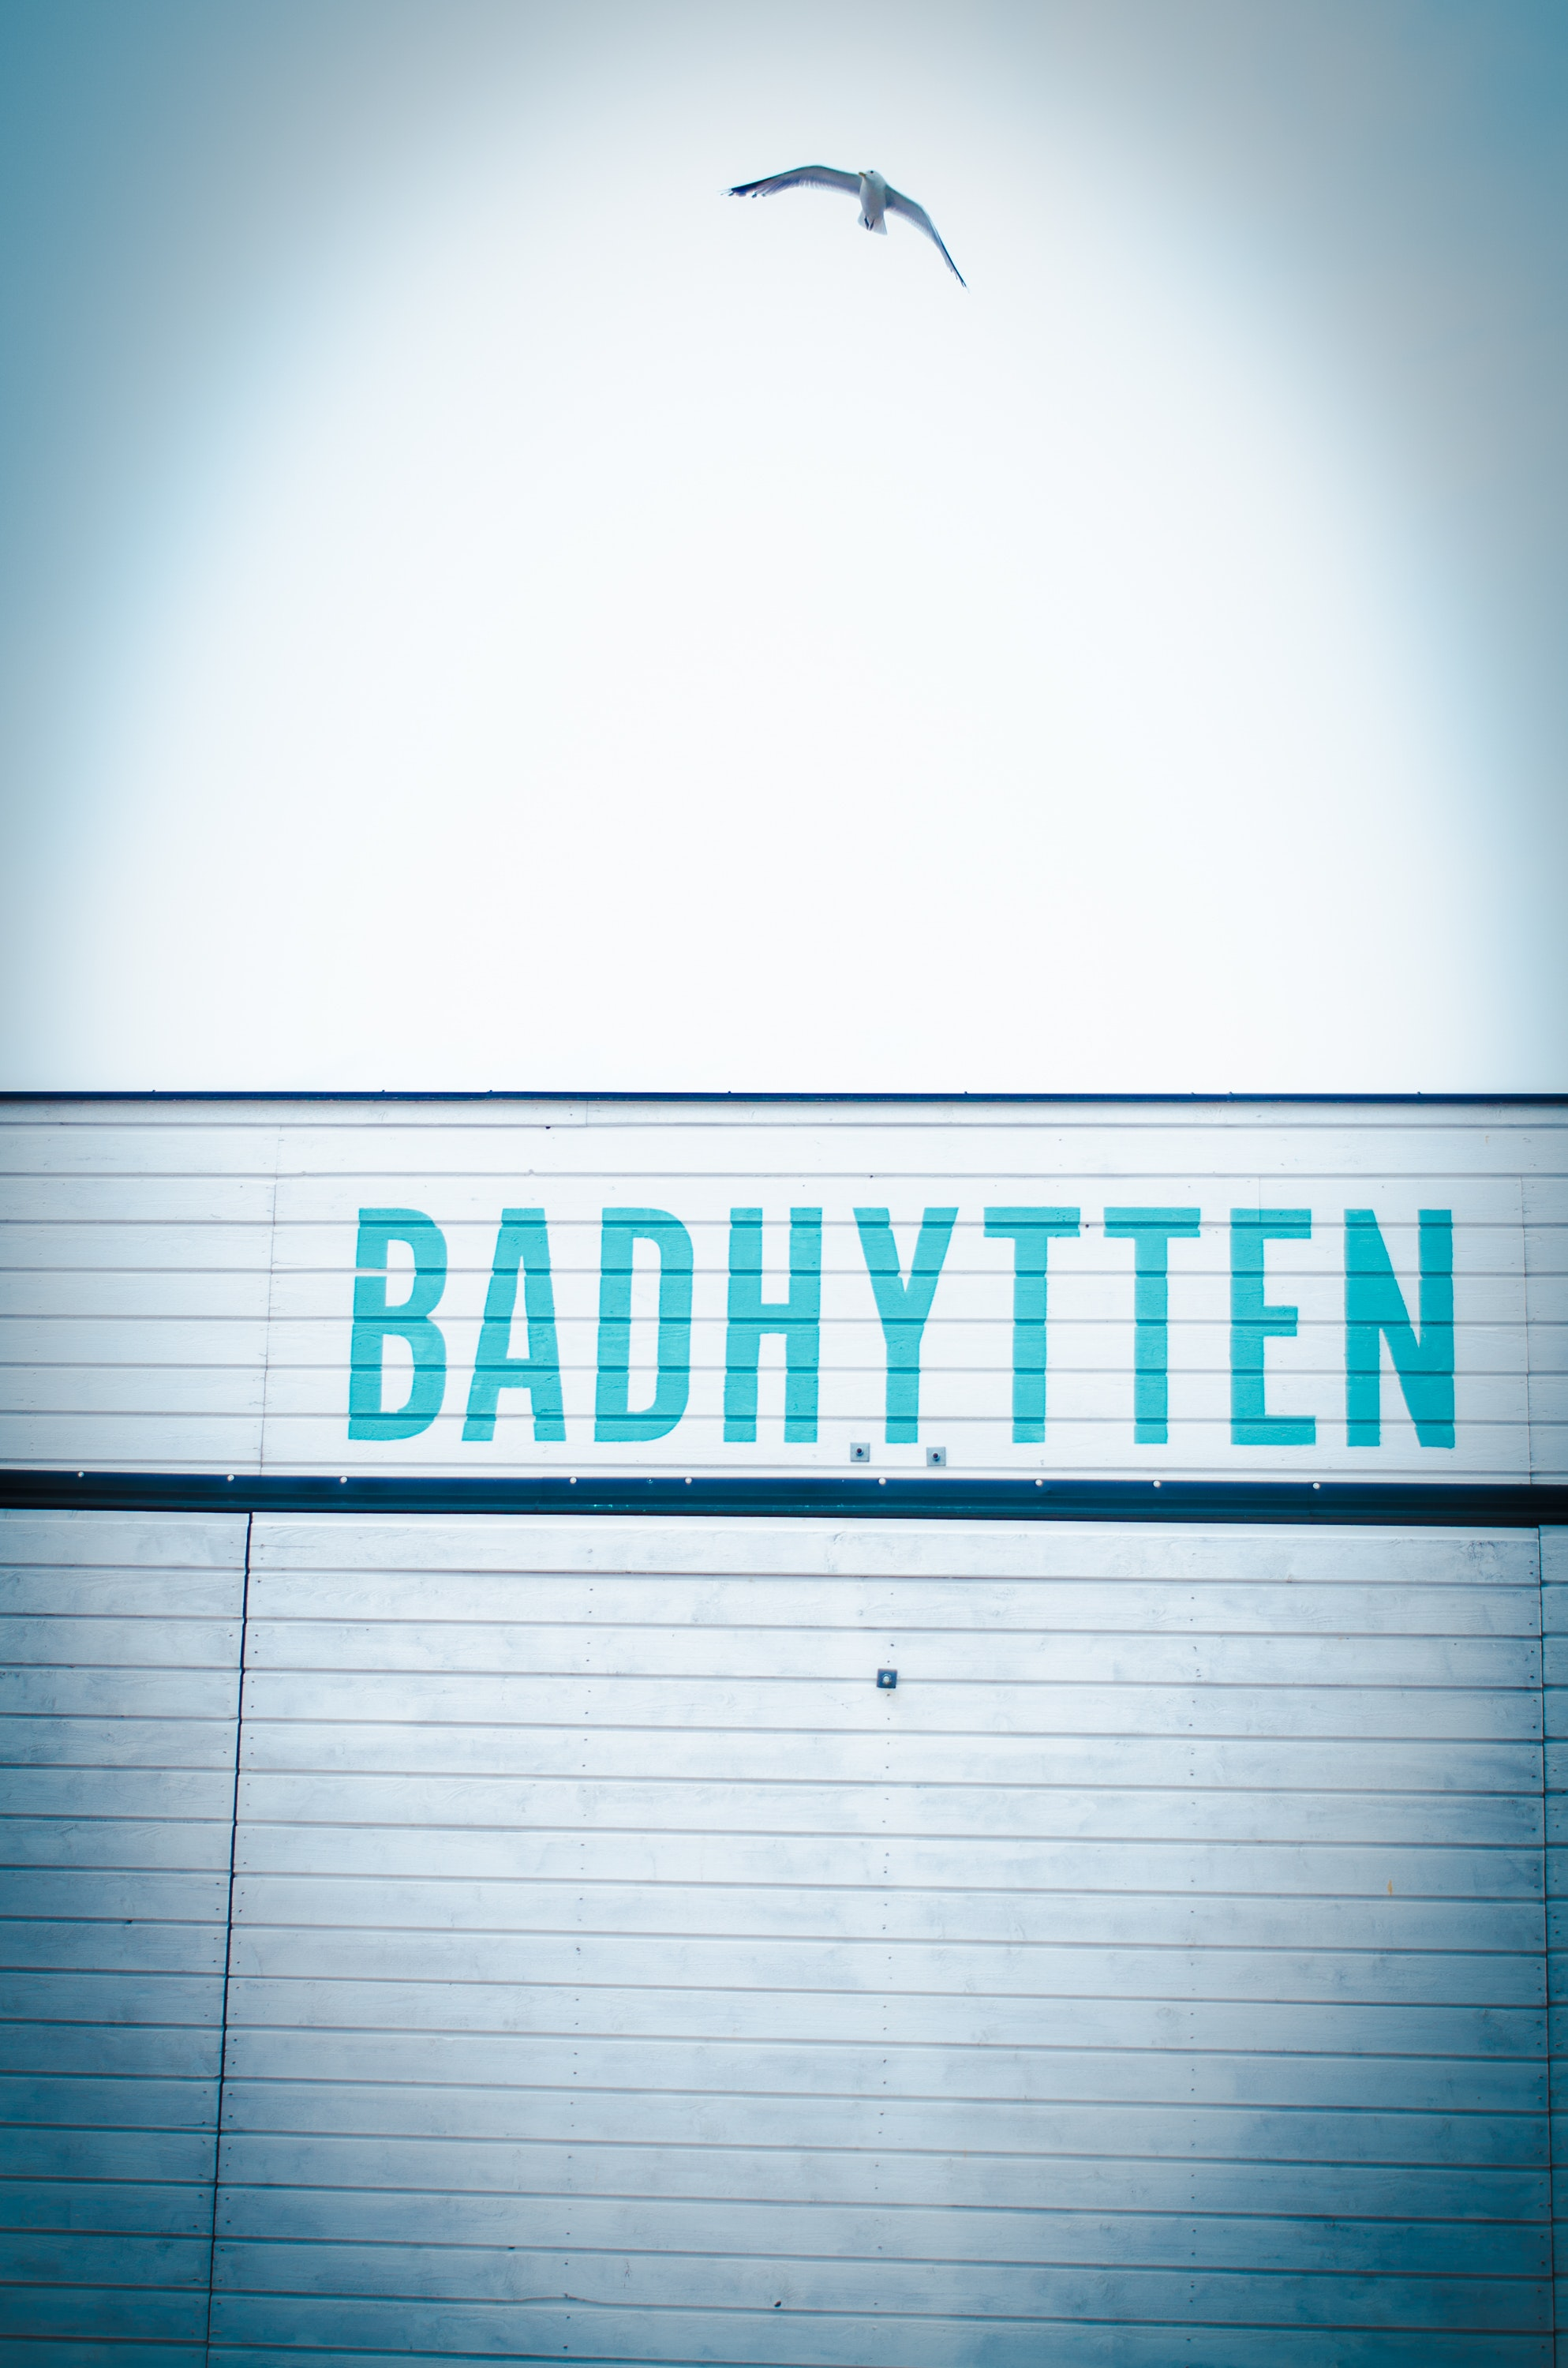 Badhytten Signage, Bird, Business, Fly, Flying, HQ Photo